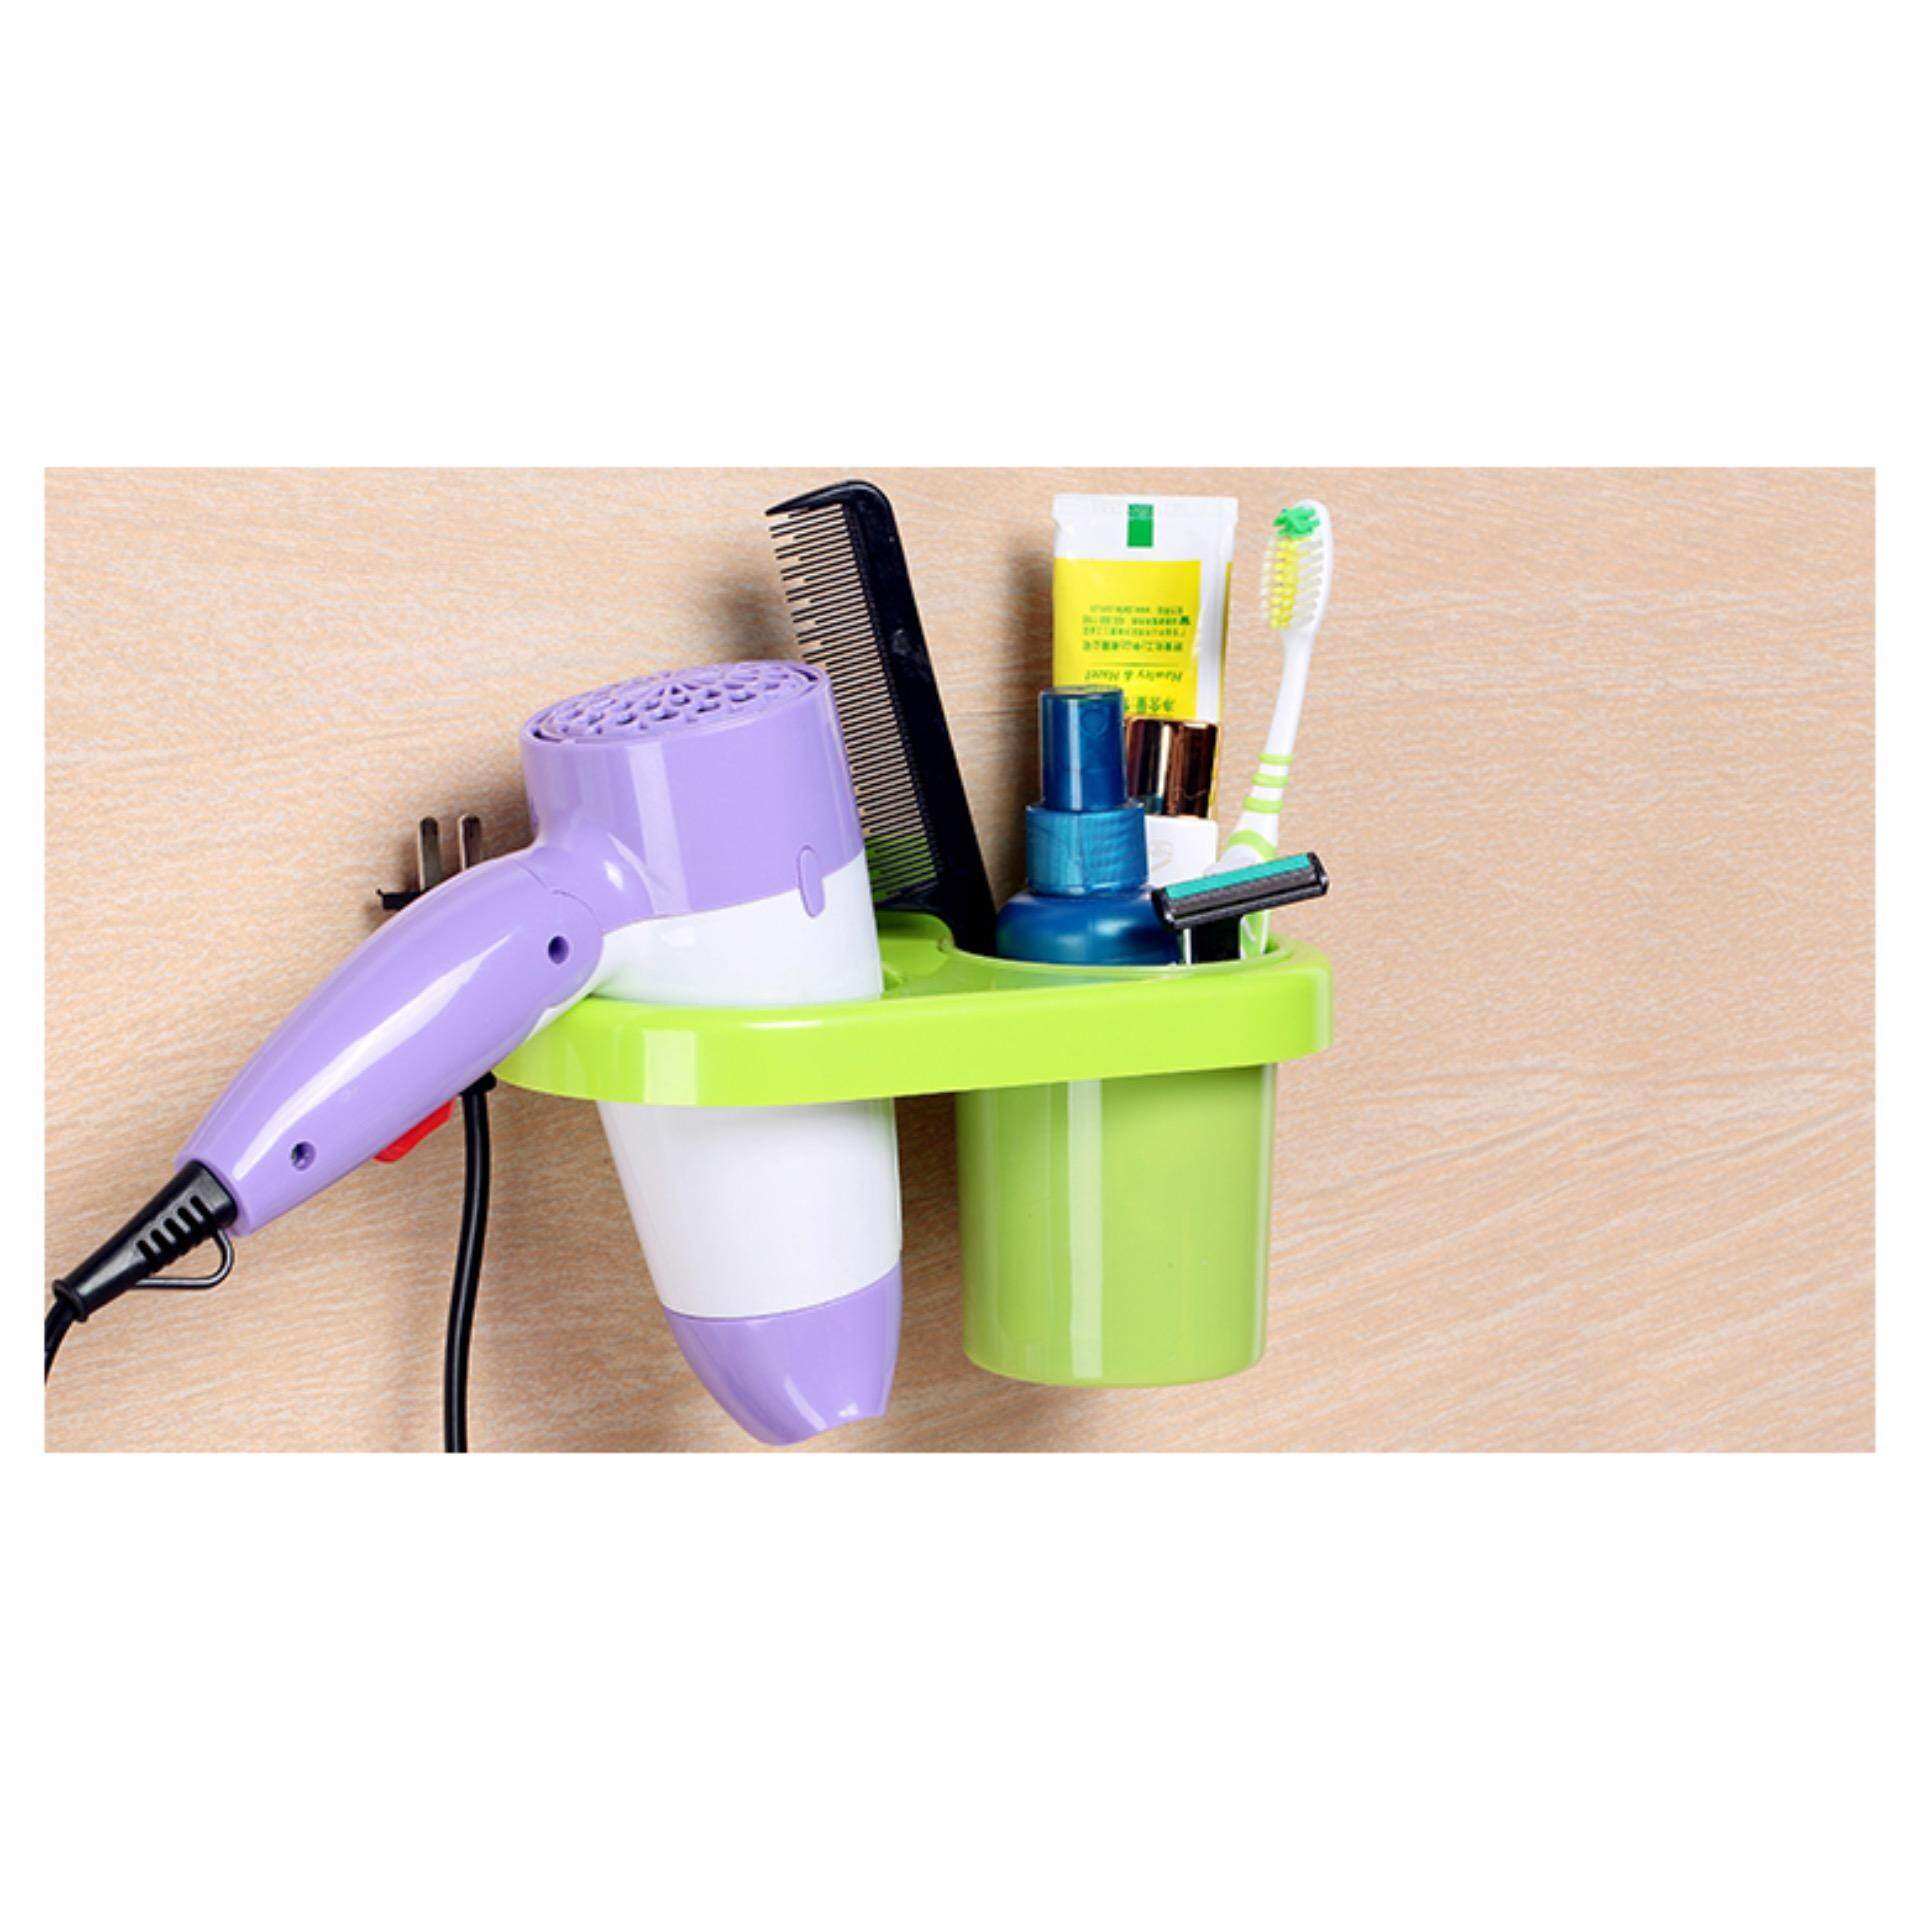 Multipurpose Toothbrush & Hair Dryer Holder